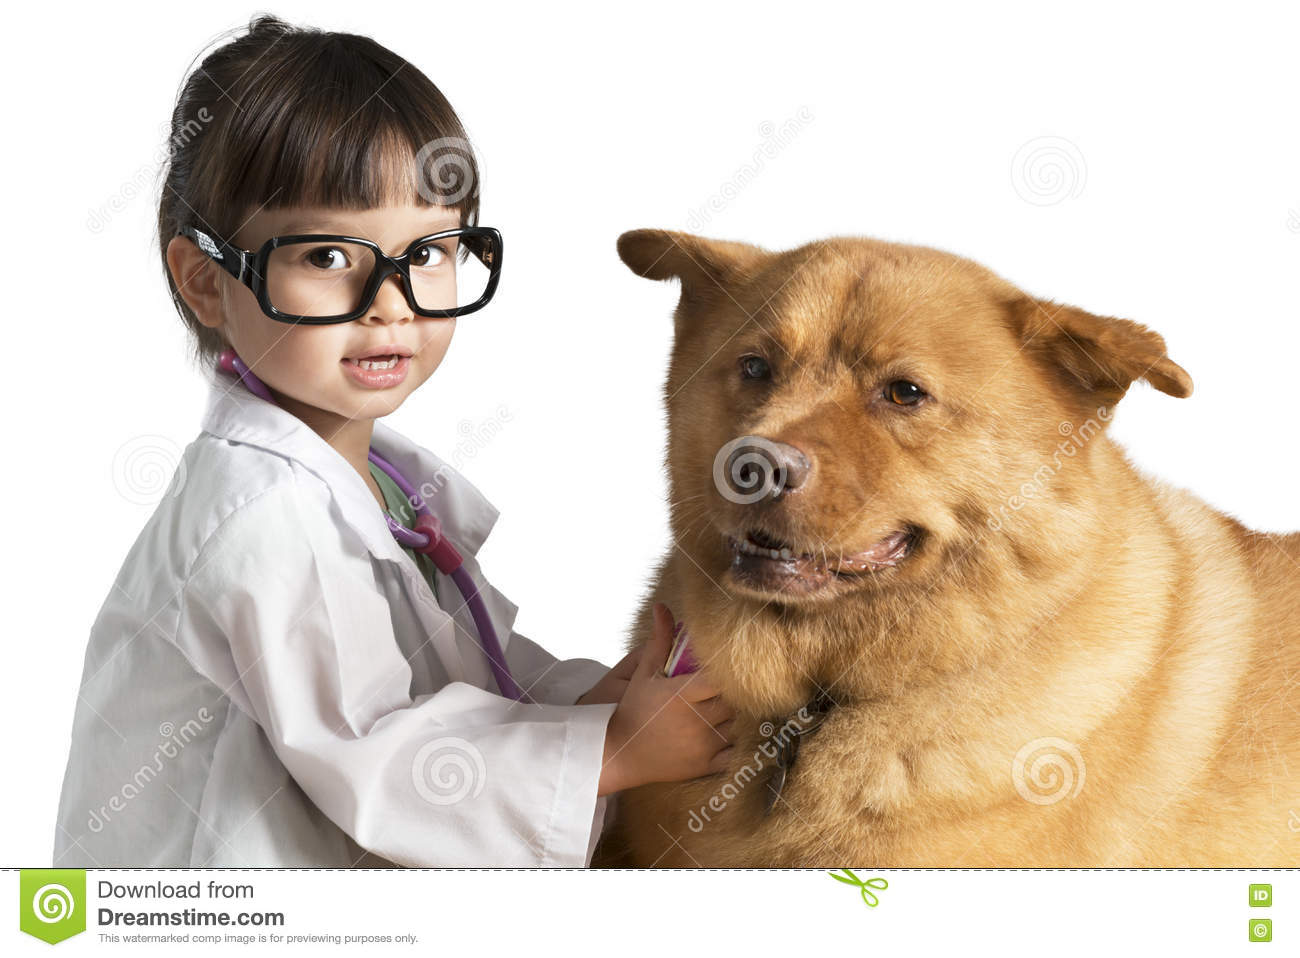 veterinar kid Kid playing veterinarian with dog